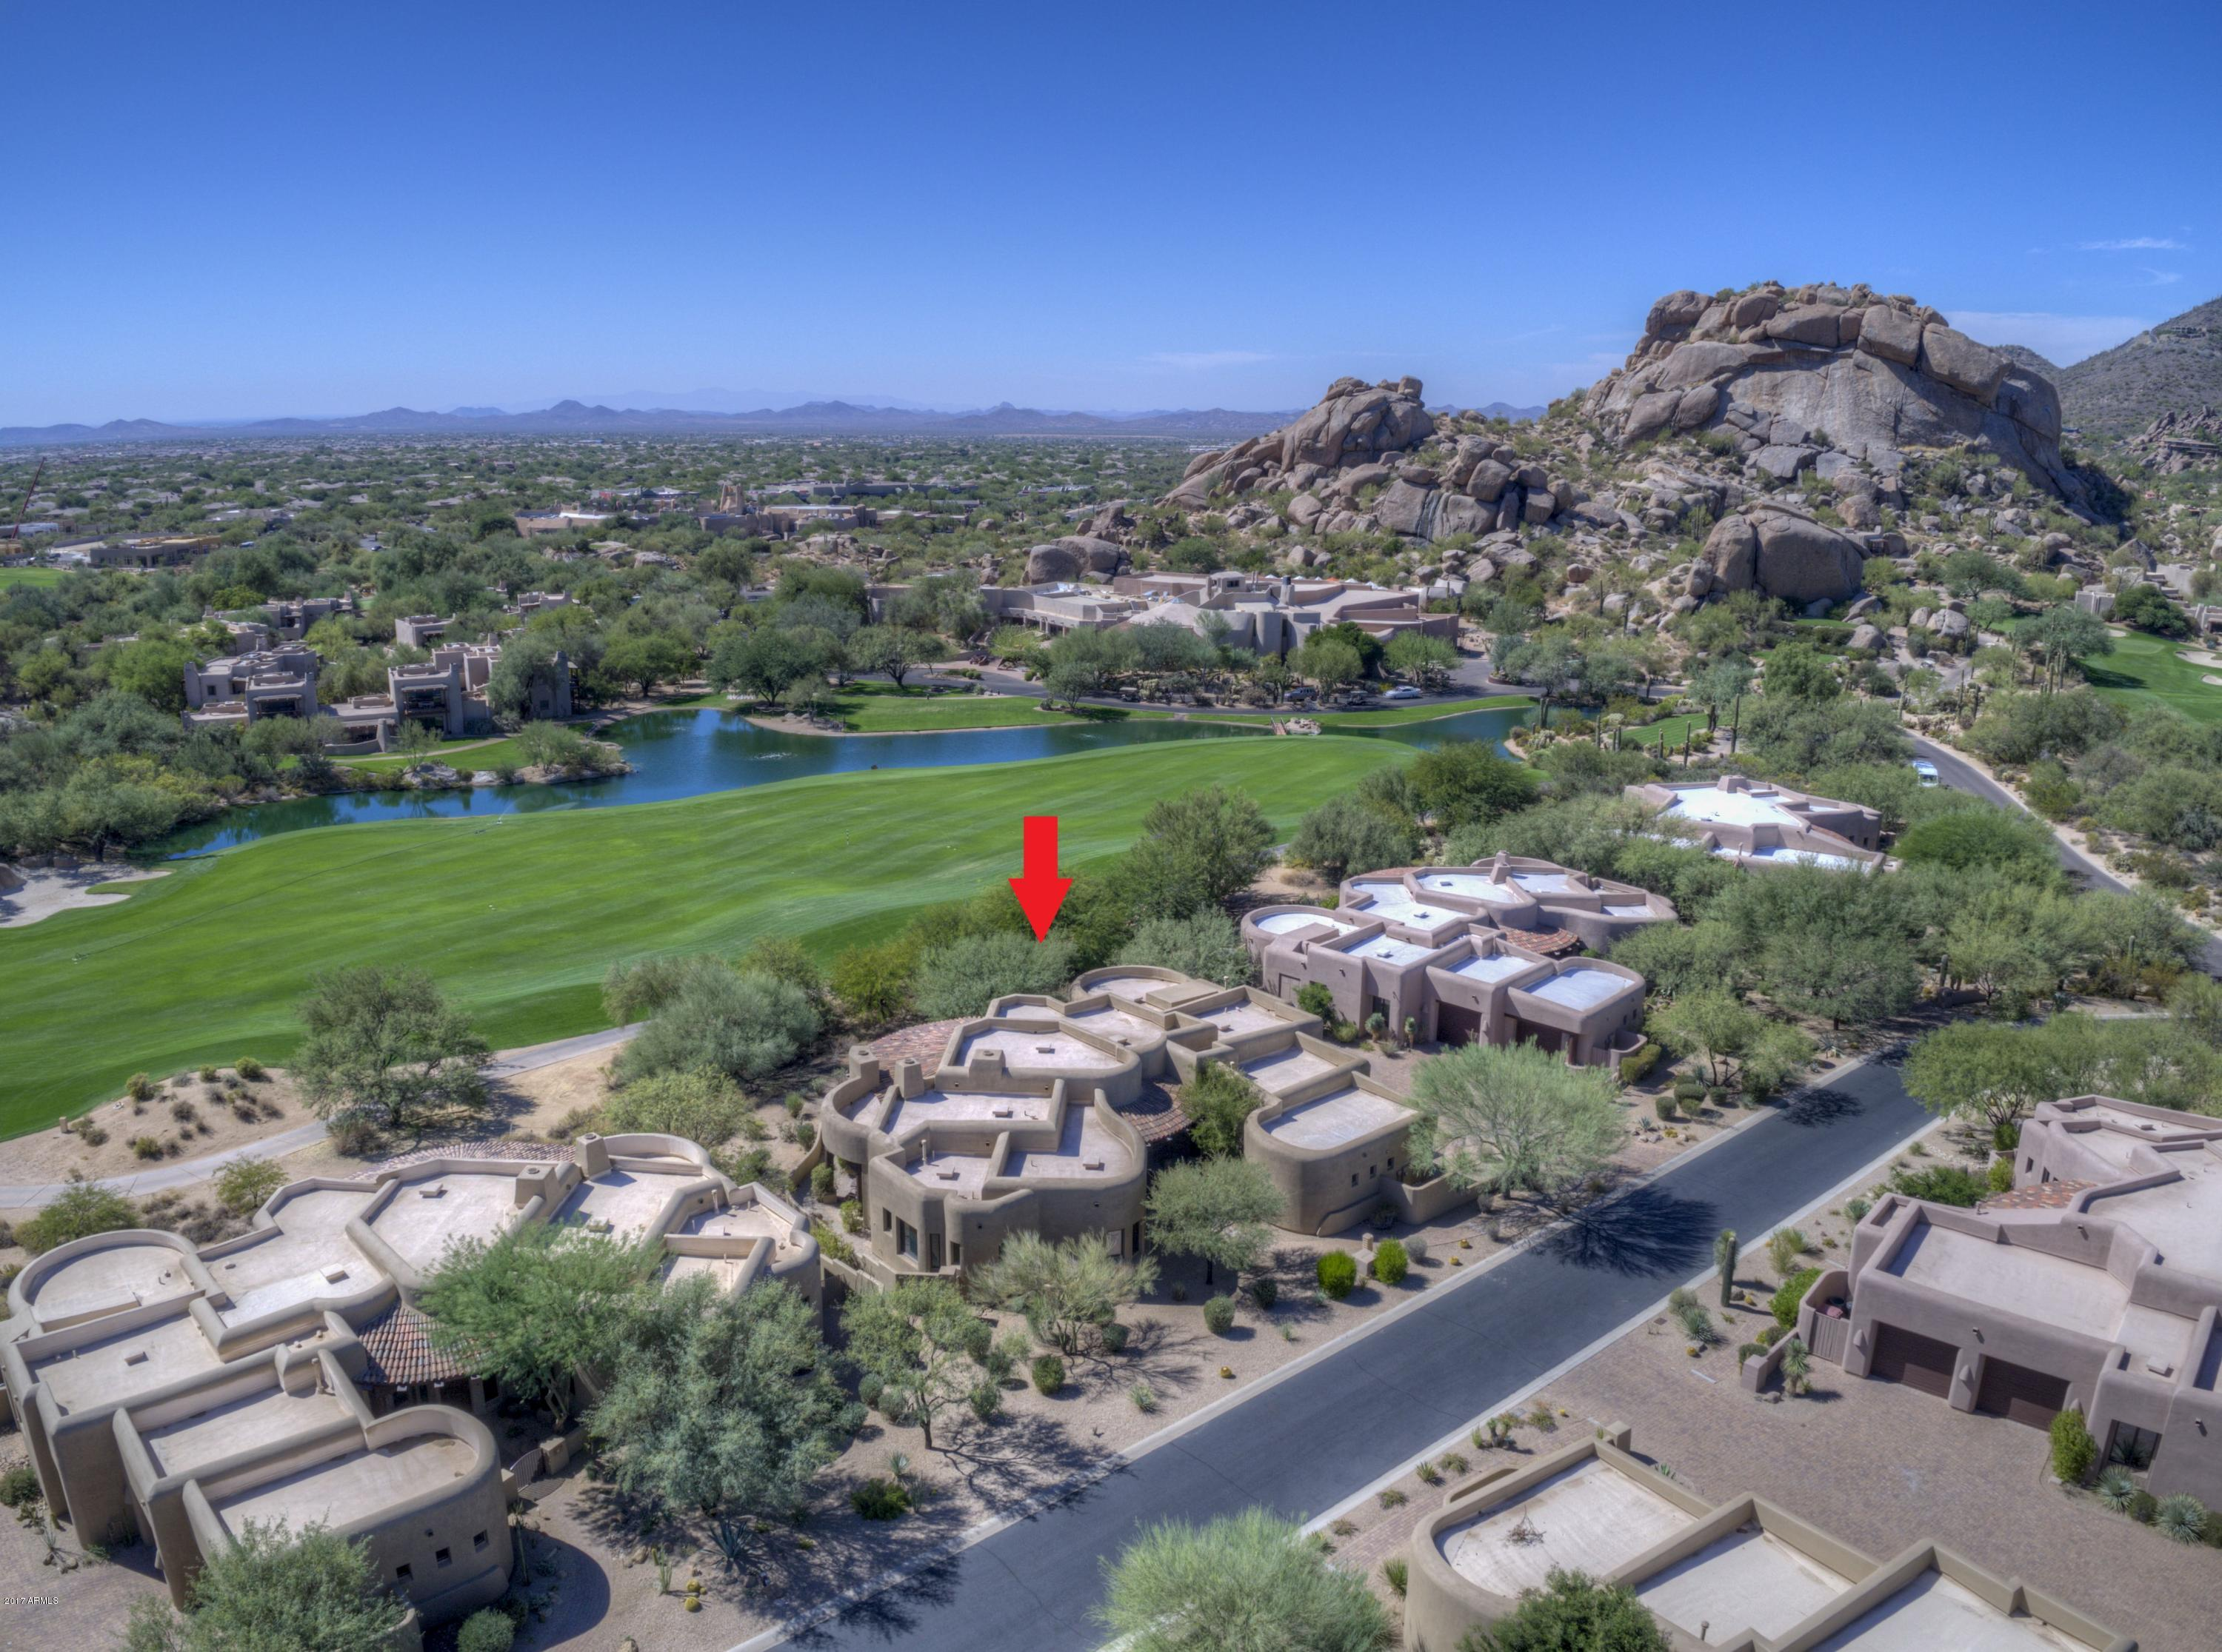 MLS 5673833 7373 E Clubhouse Drive Unit 8, Scottsdale, AZ 85266 Scottsdale AZ The Boulders